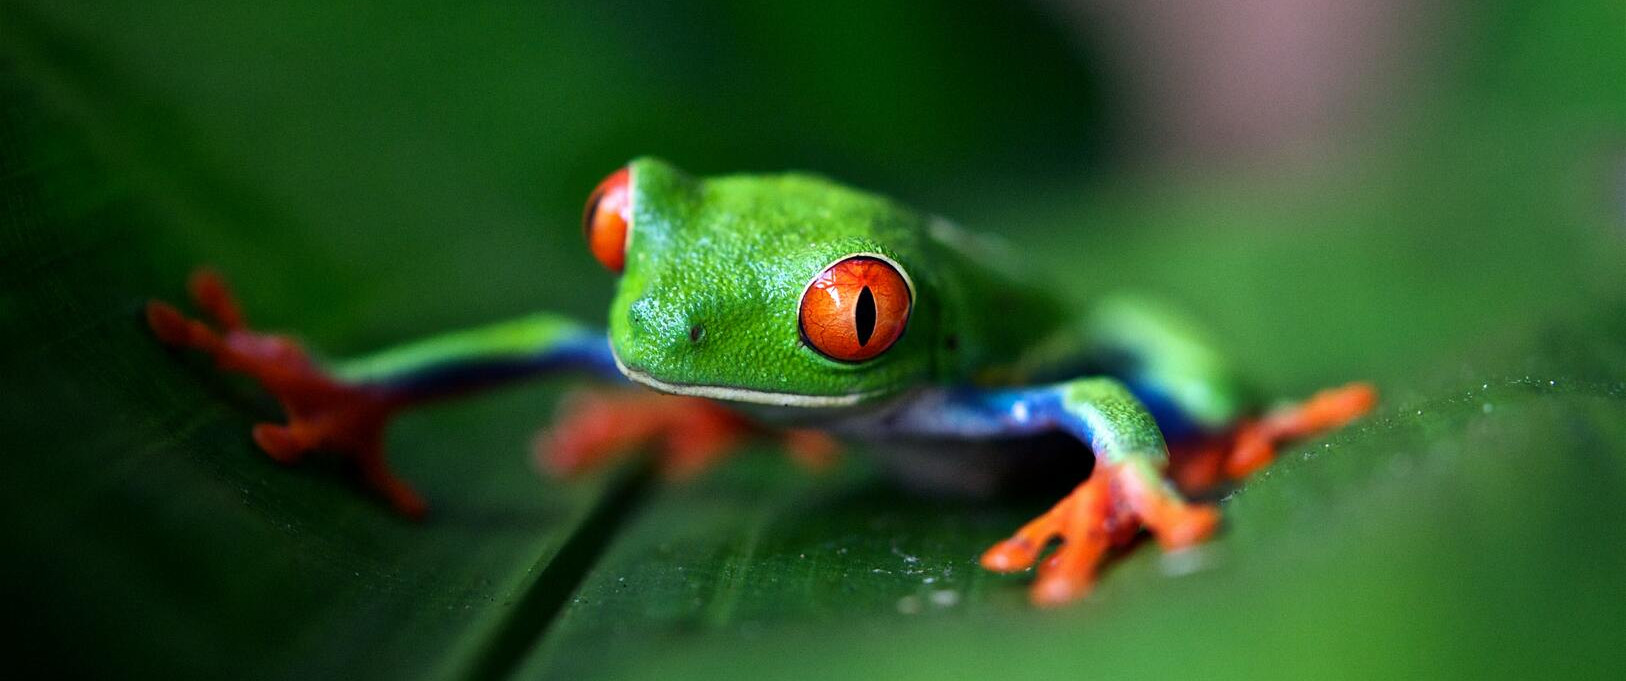 A green tree frog :D